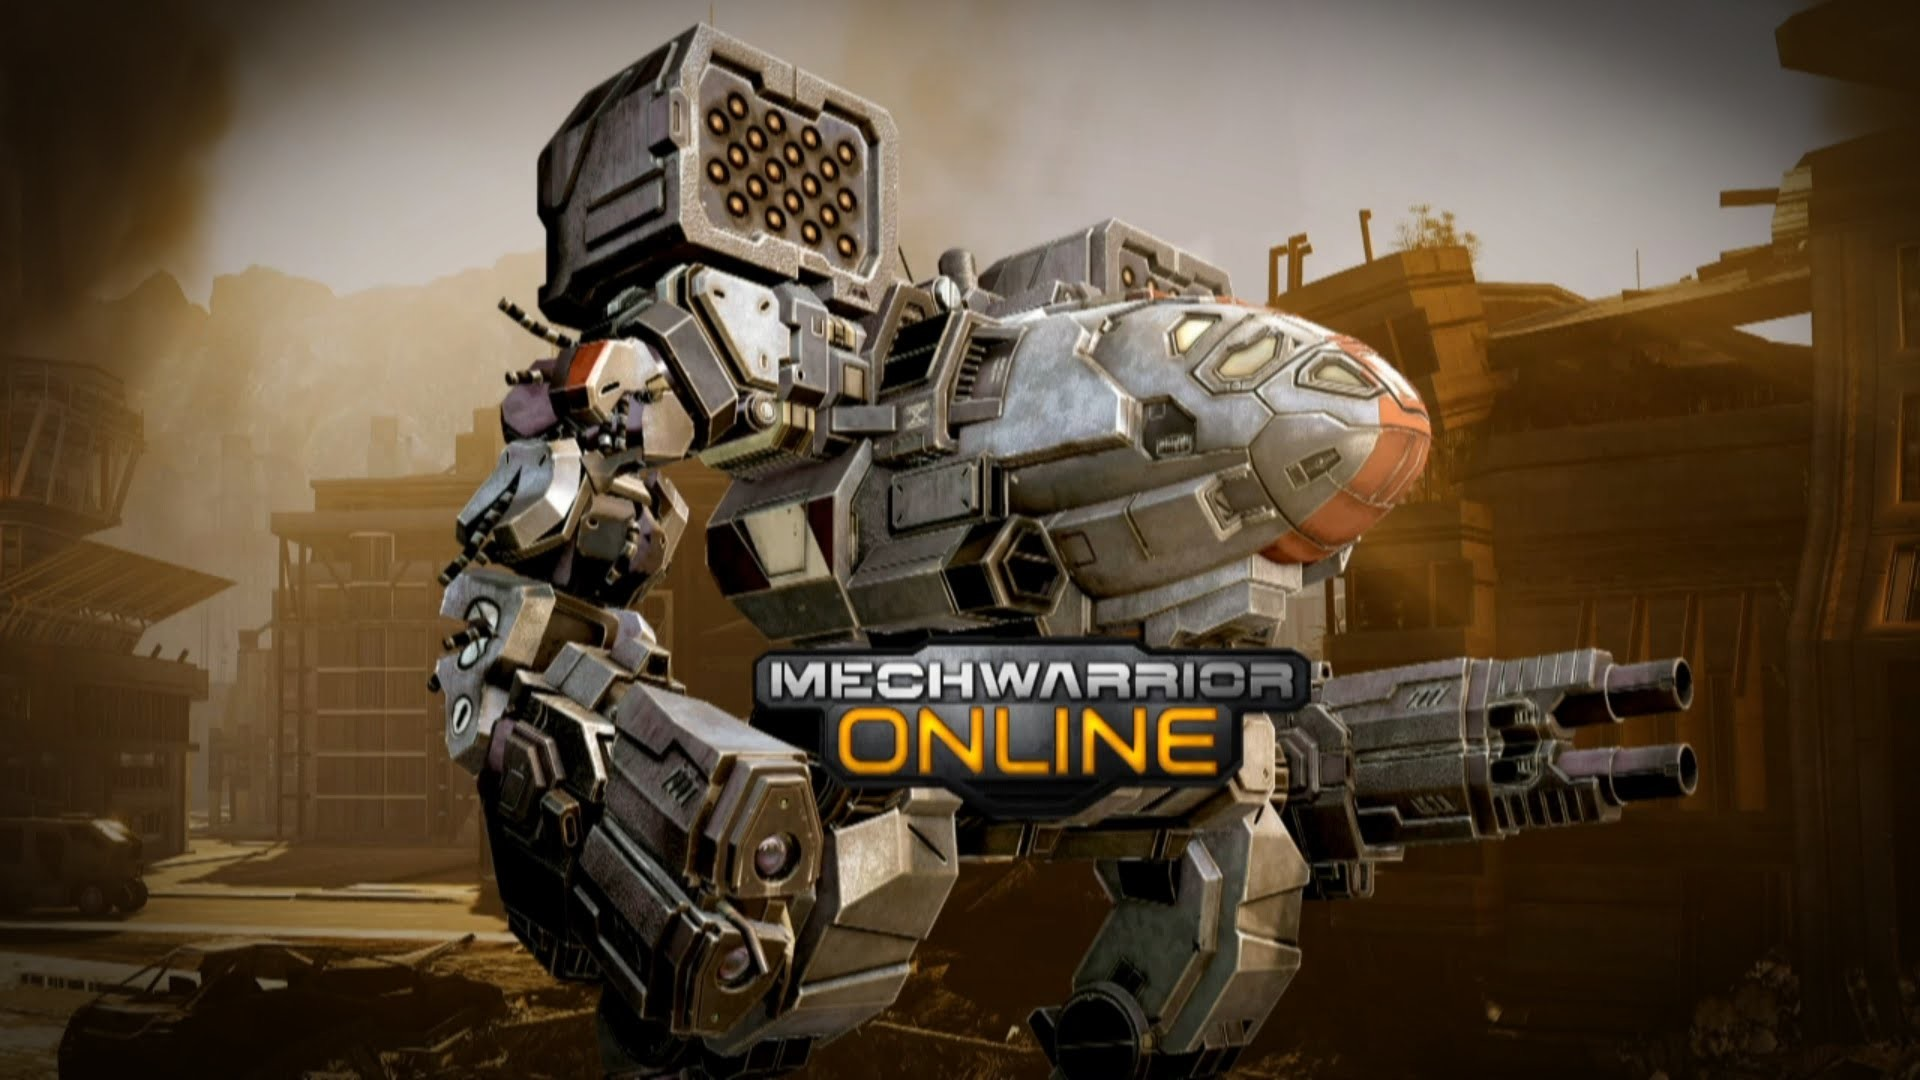 Mechwarrior Desktop Wallpaper (67+ images)